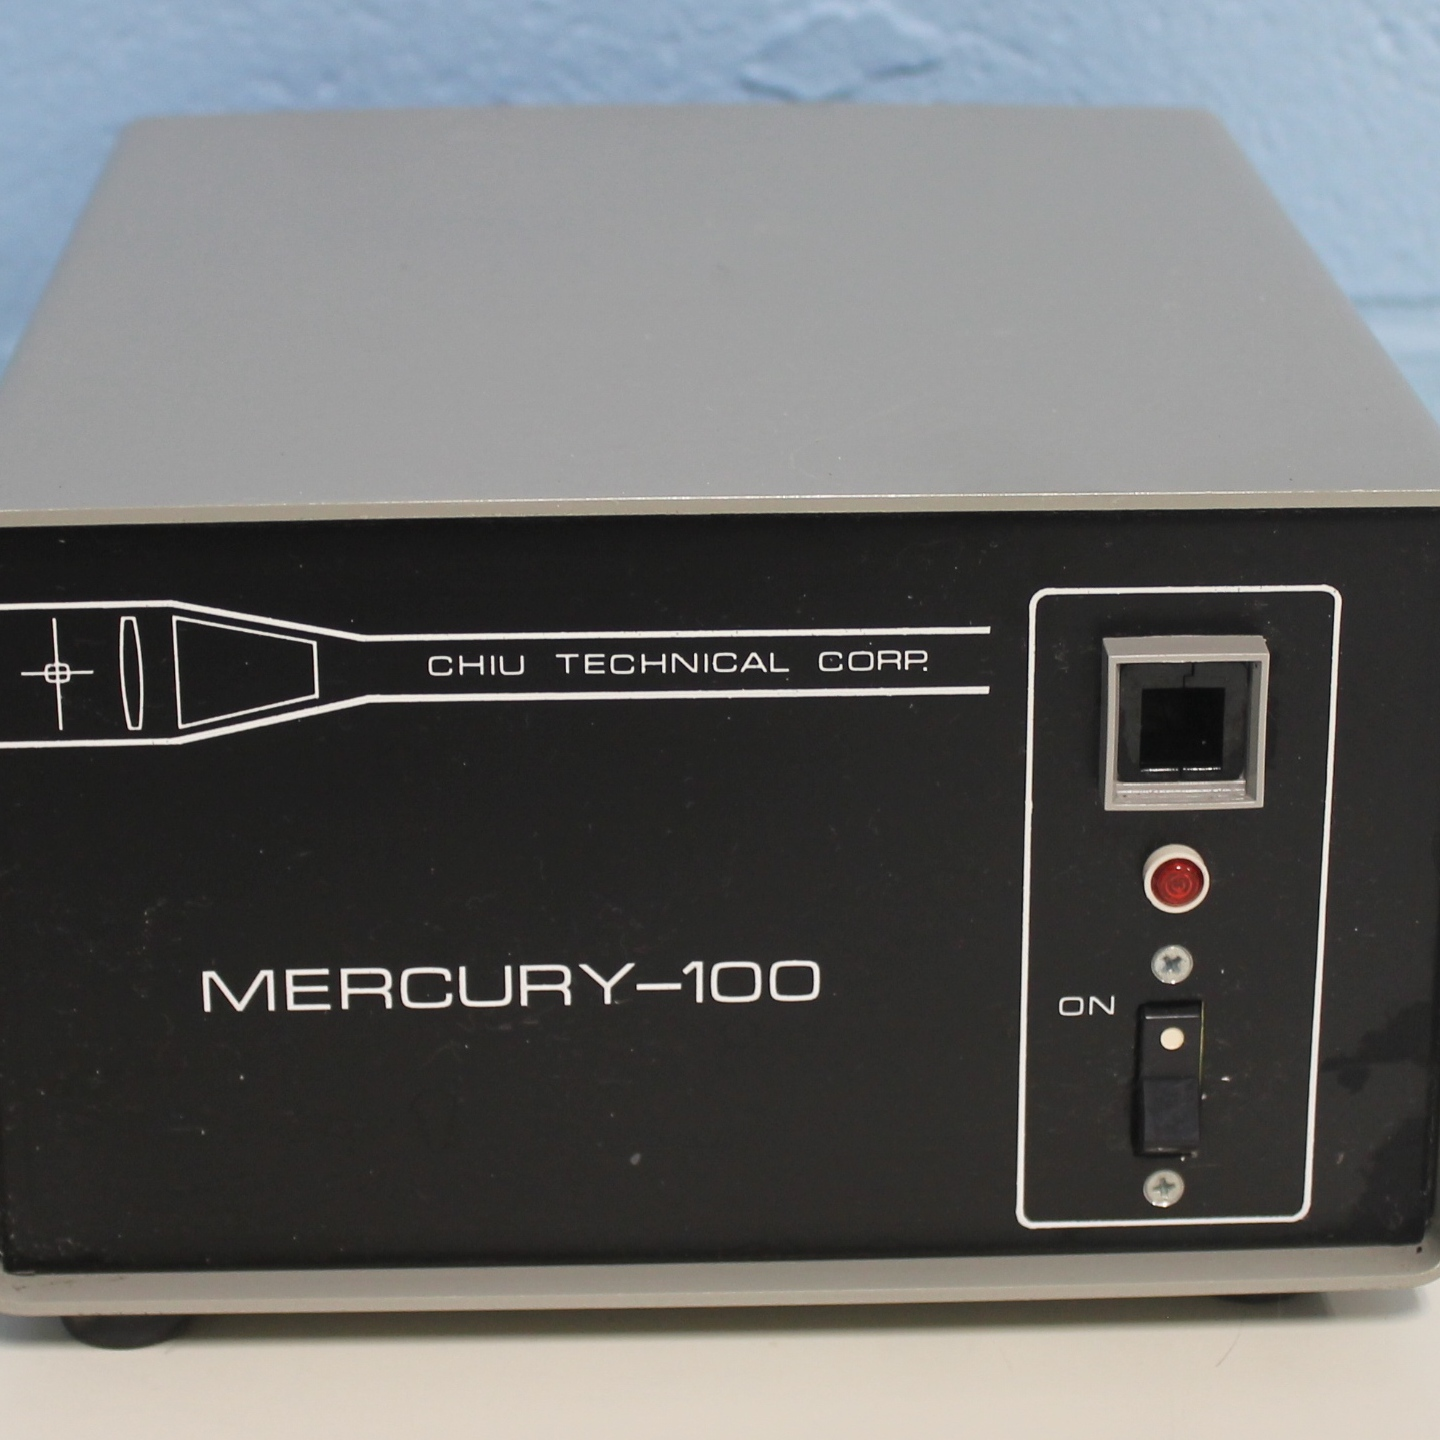 MERCURY-100 Power Supply Name